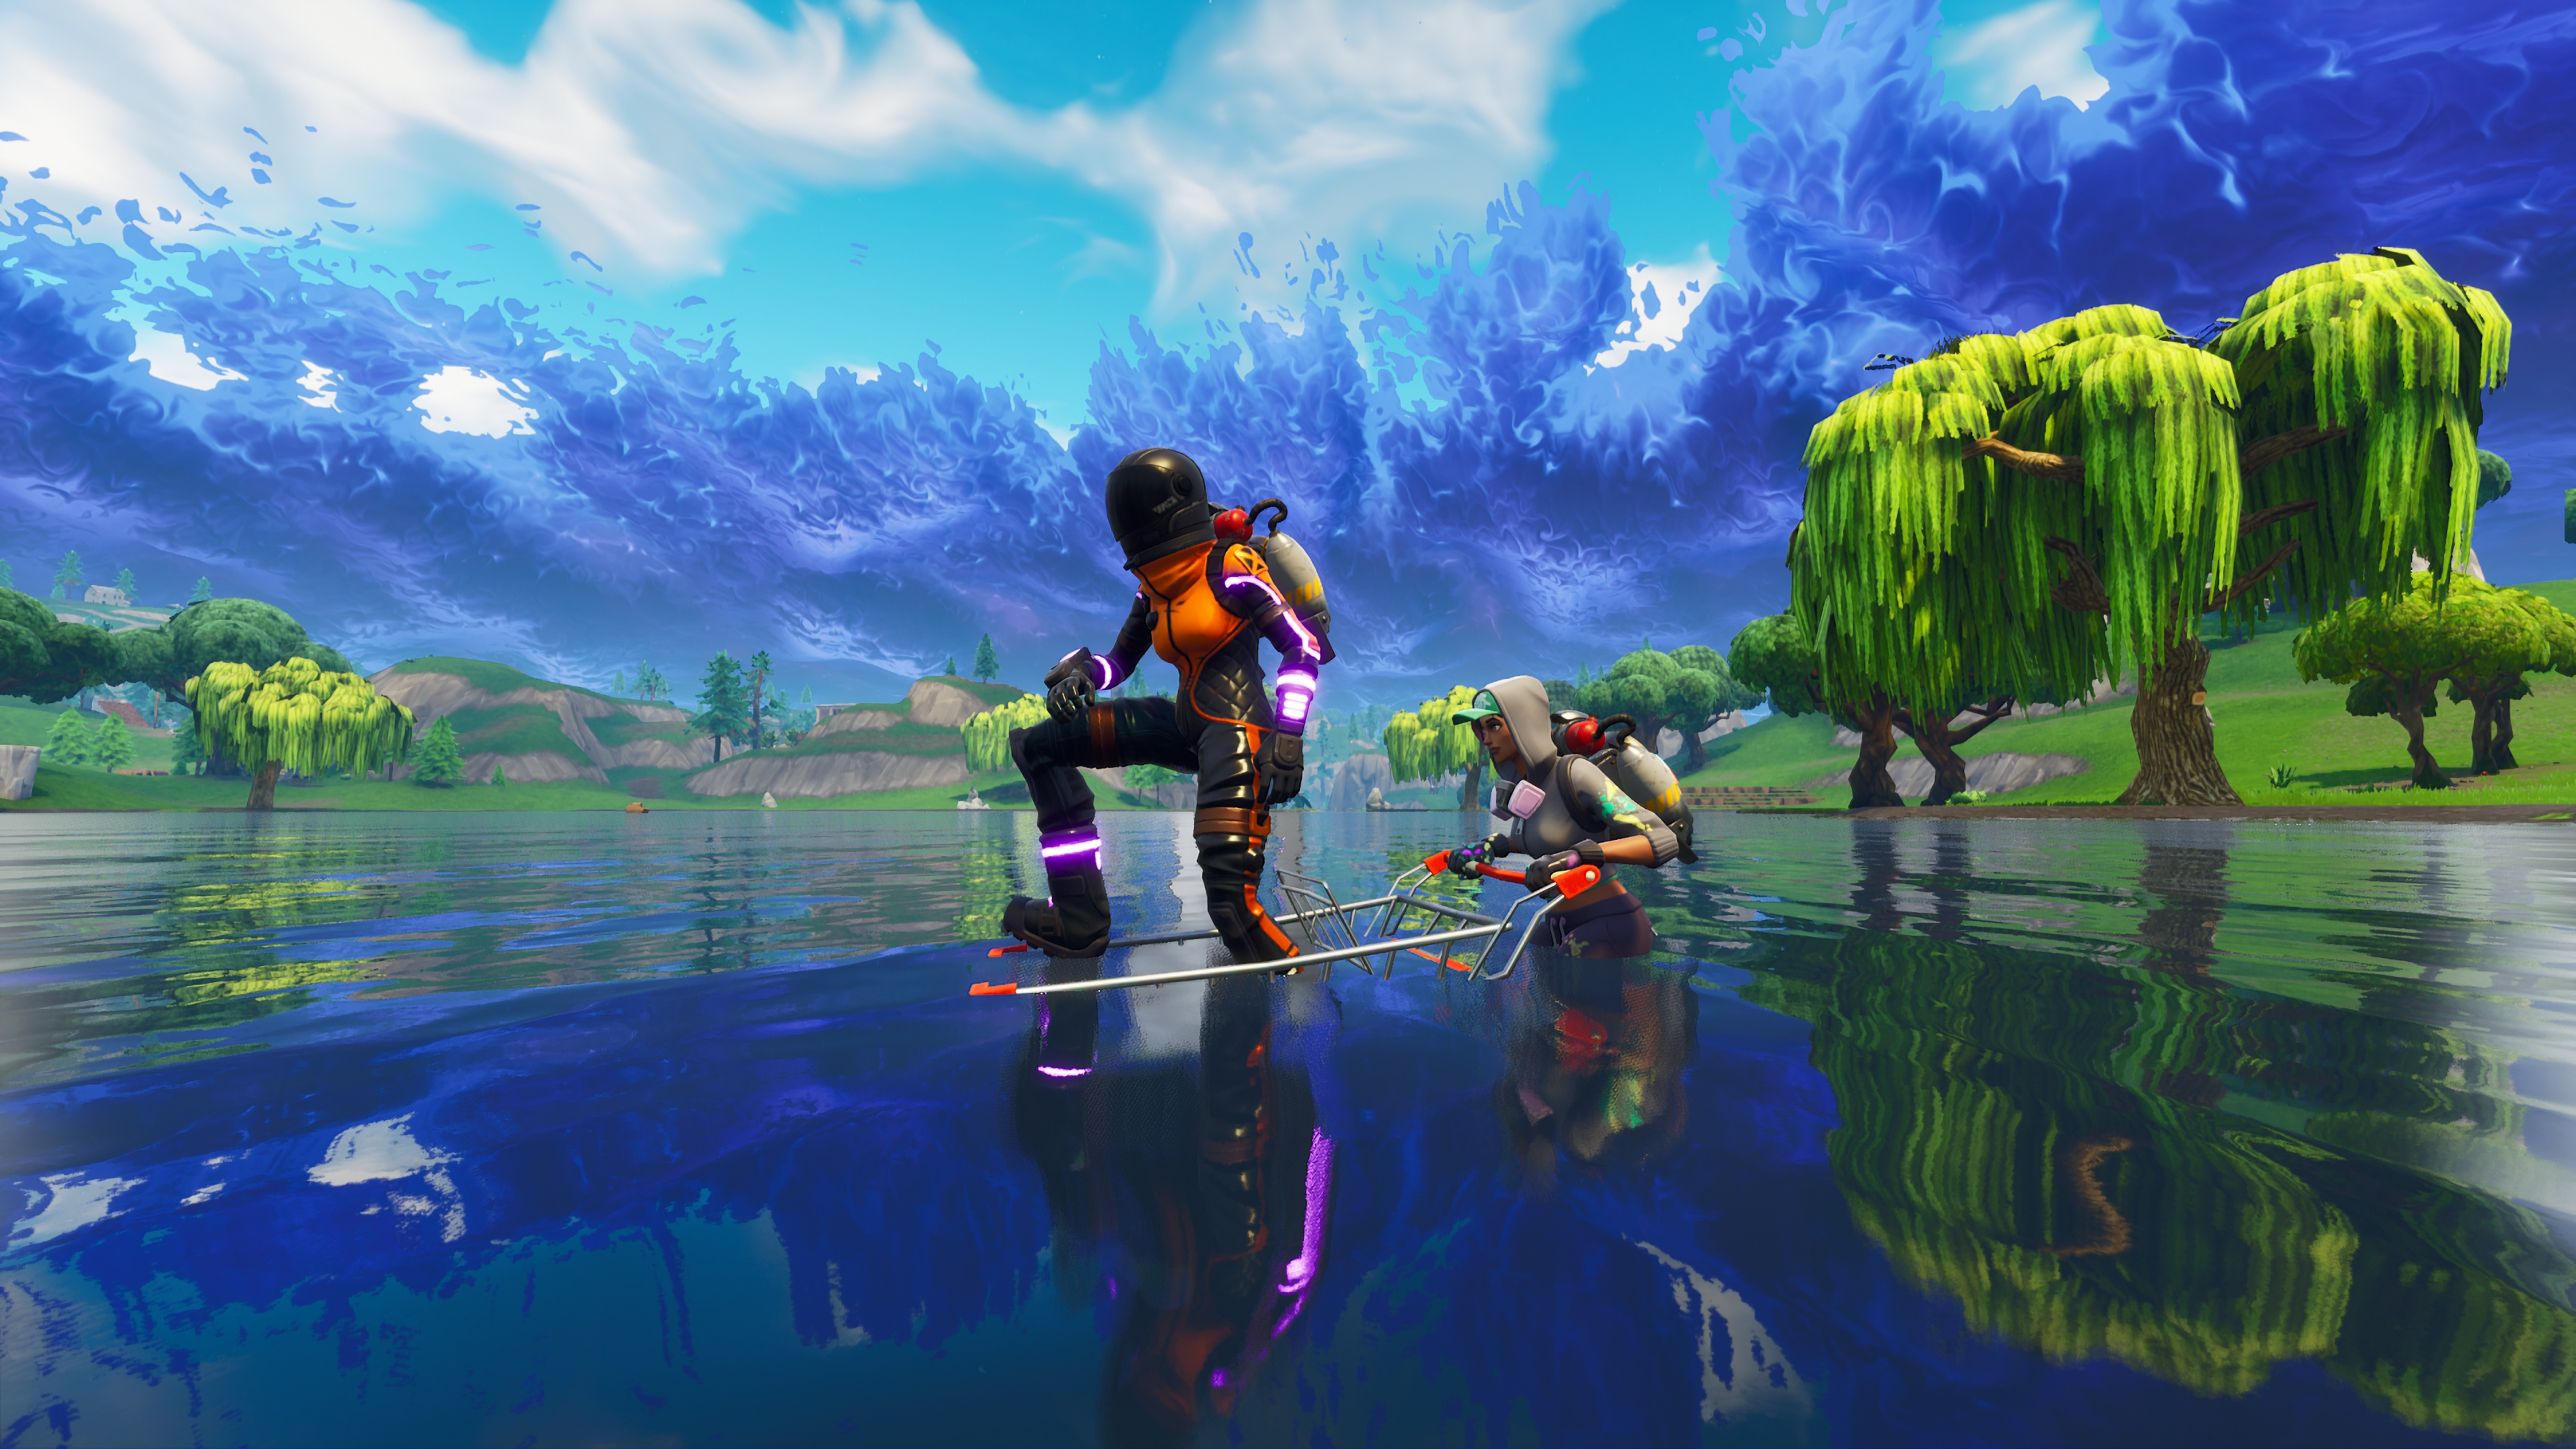 Fortnite background 120